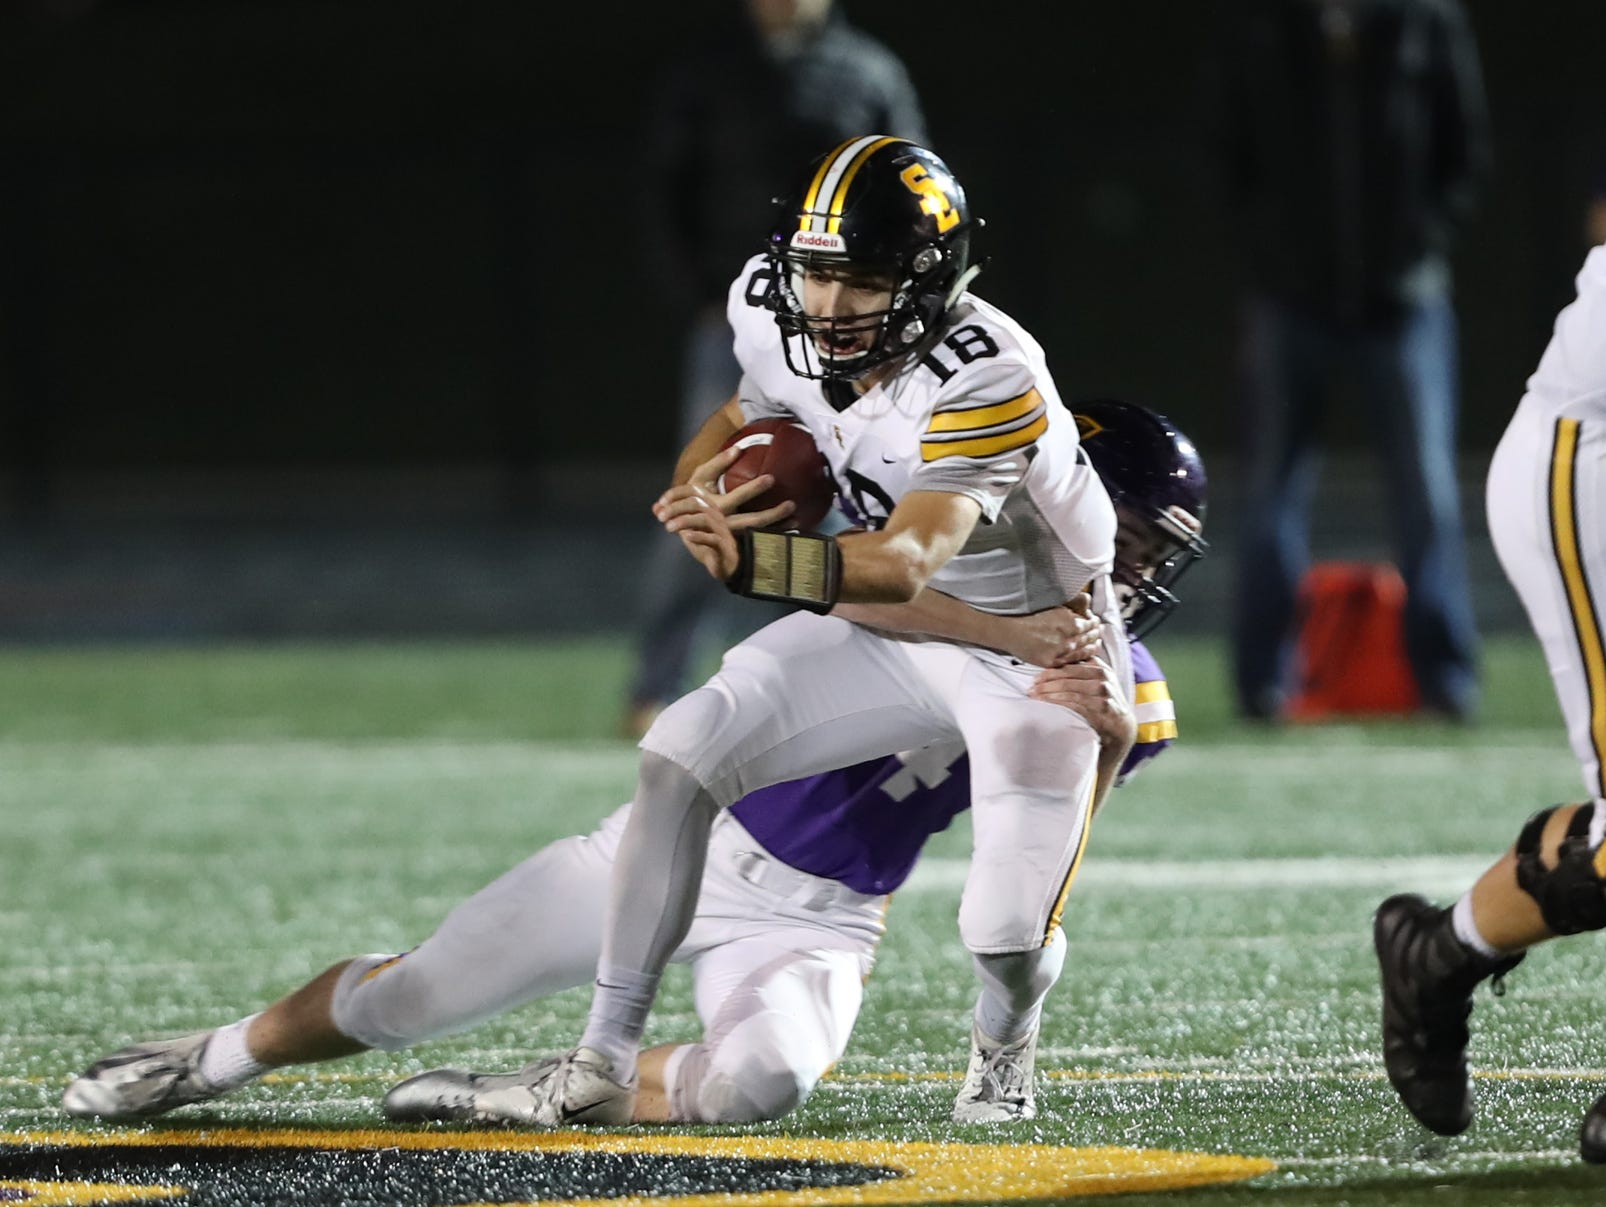 Nov 2, 2018; Johnston, IA, USA; Southeast Polk Rams Josiah Cole (18) is tackled by the Johnston Dragons at Johnston Stadium. The Rams beat the Dragons 21-7.